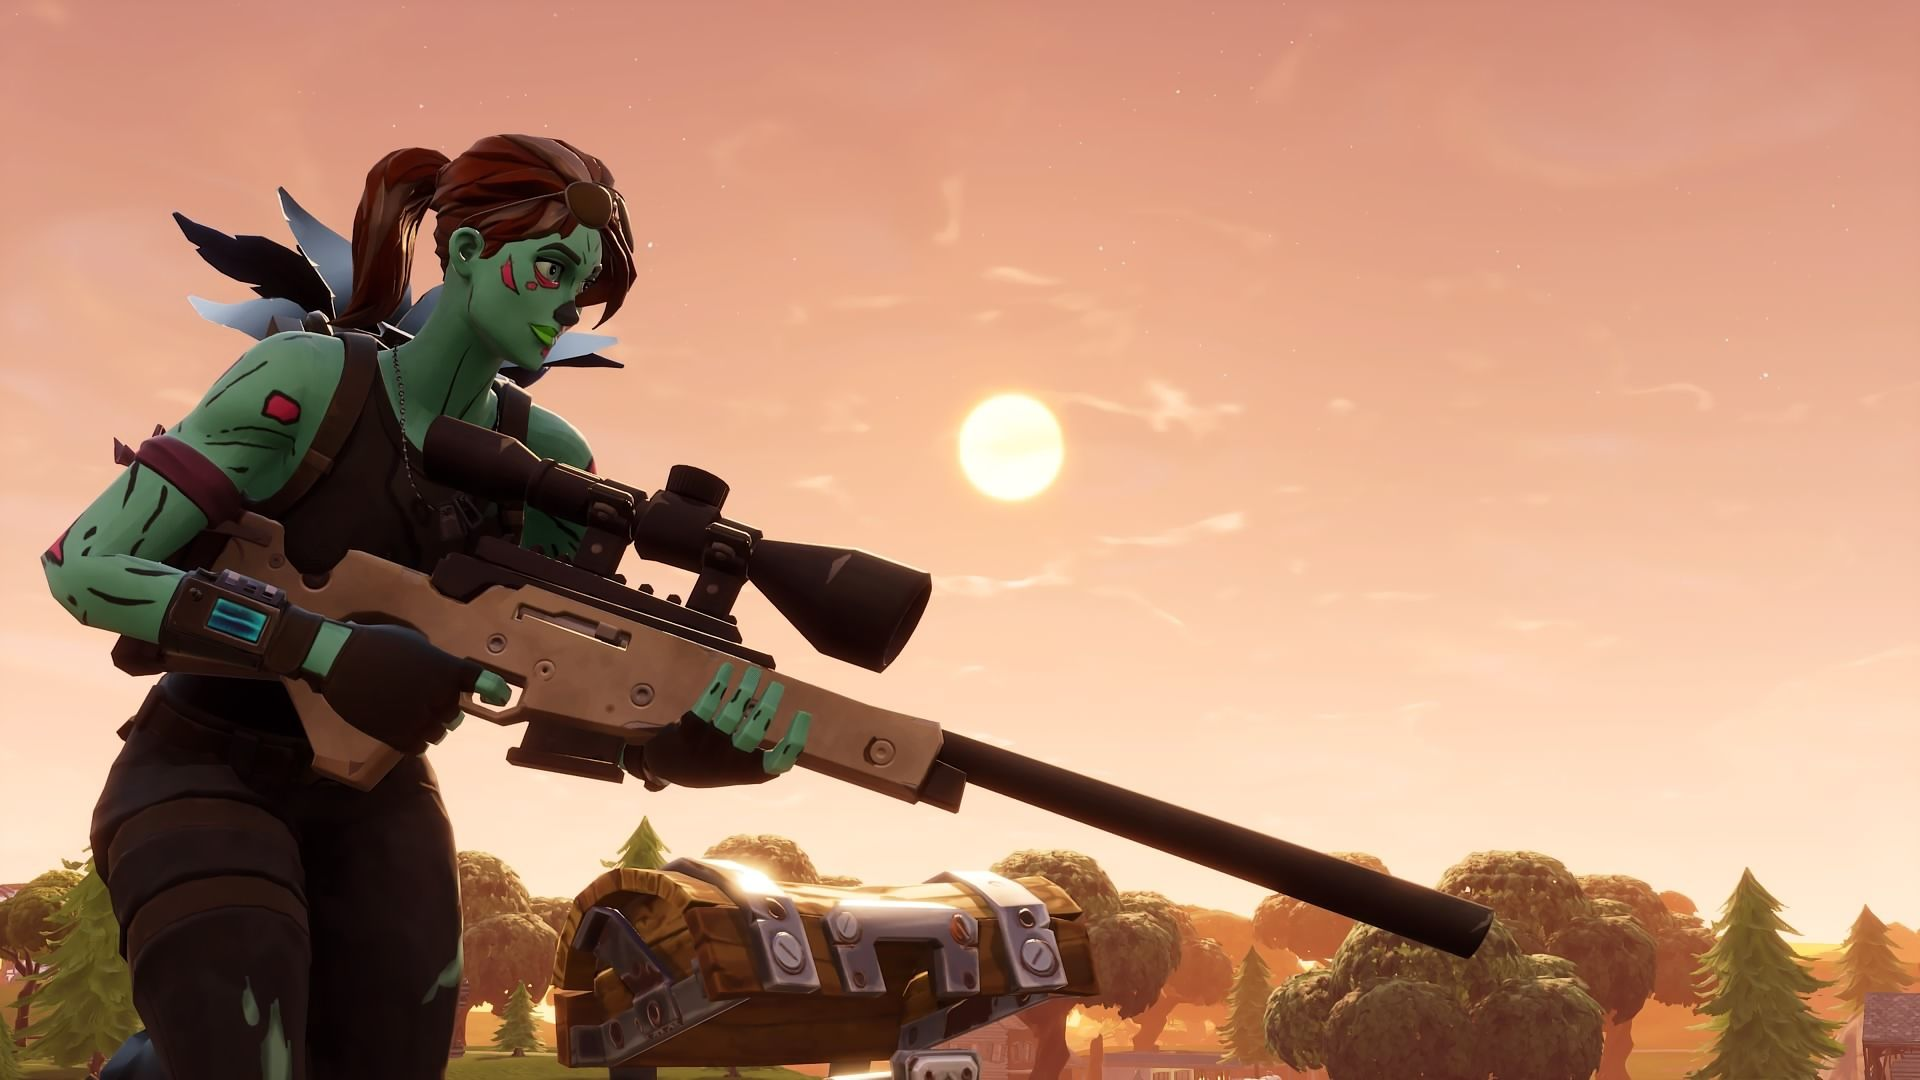 1920x1080 Hd Wallpaper Of Ghoul Trooper Fortnite Battle Royale